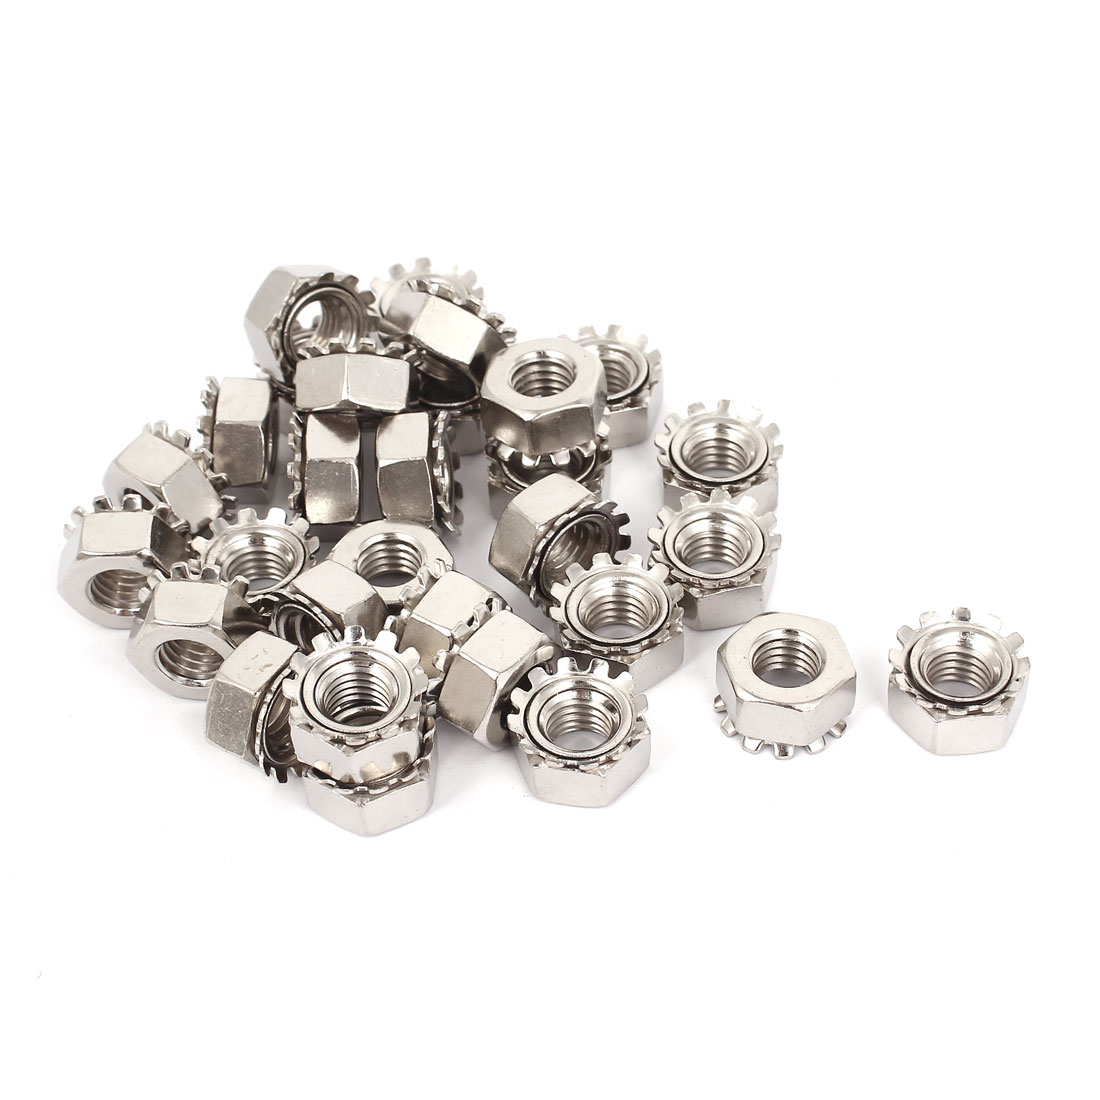 10mm Thread Dia Nickel Plated External Tooth K Lock Kep Nut Silver Tone 30Pcs